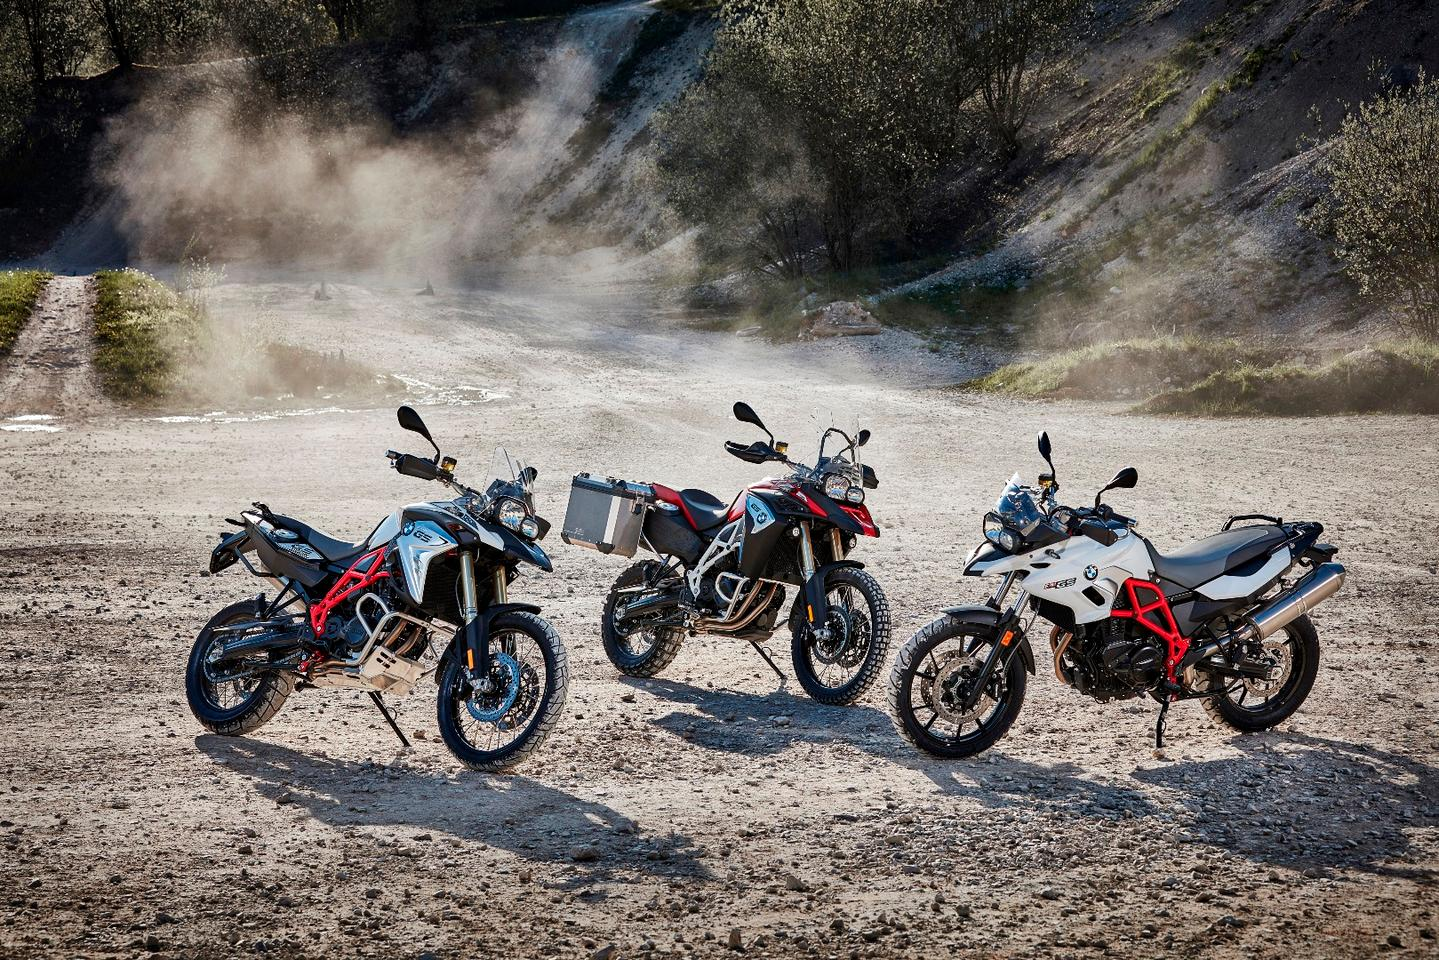 The most important updates announced thus far by BMW concern the F700/800 GS family